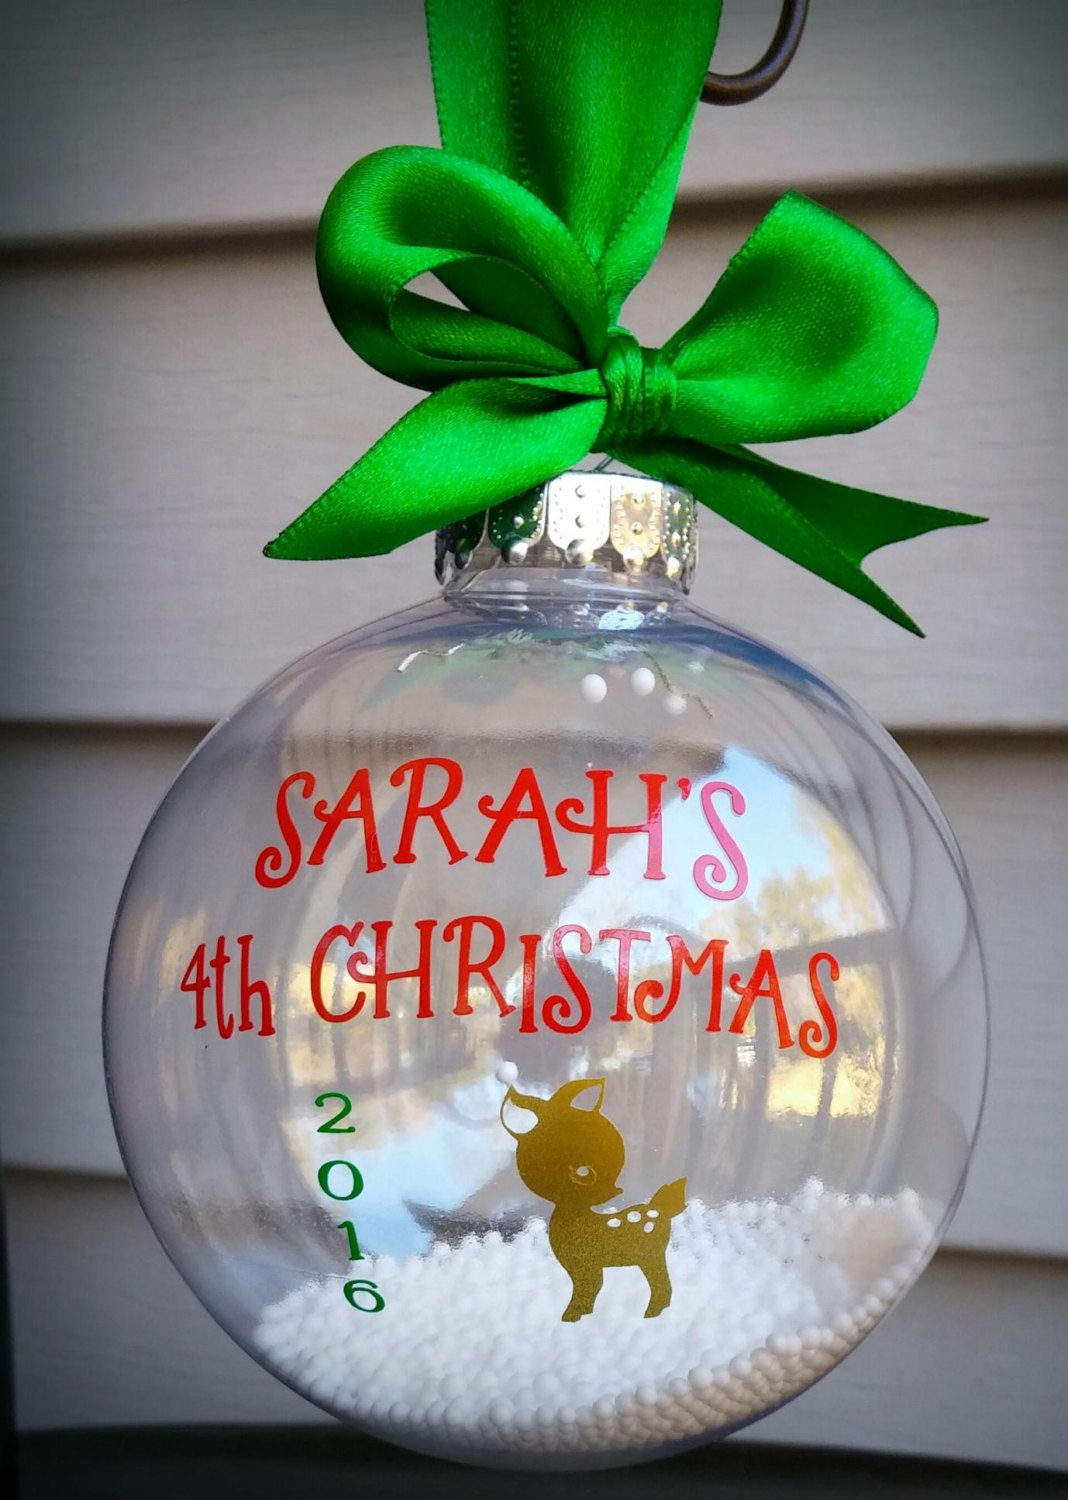 Christmas Ornament For Baby Girl Child S Ornament Baby S First Christmas Baby S Second Chri Christmas Ornaments Baby First Christmas Ornament Circuit Crafts